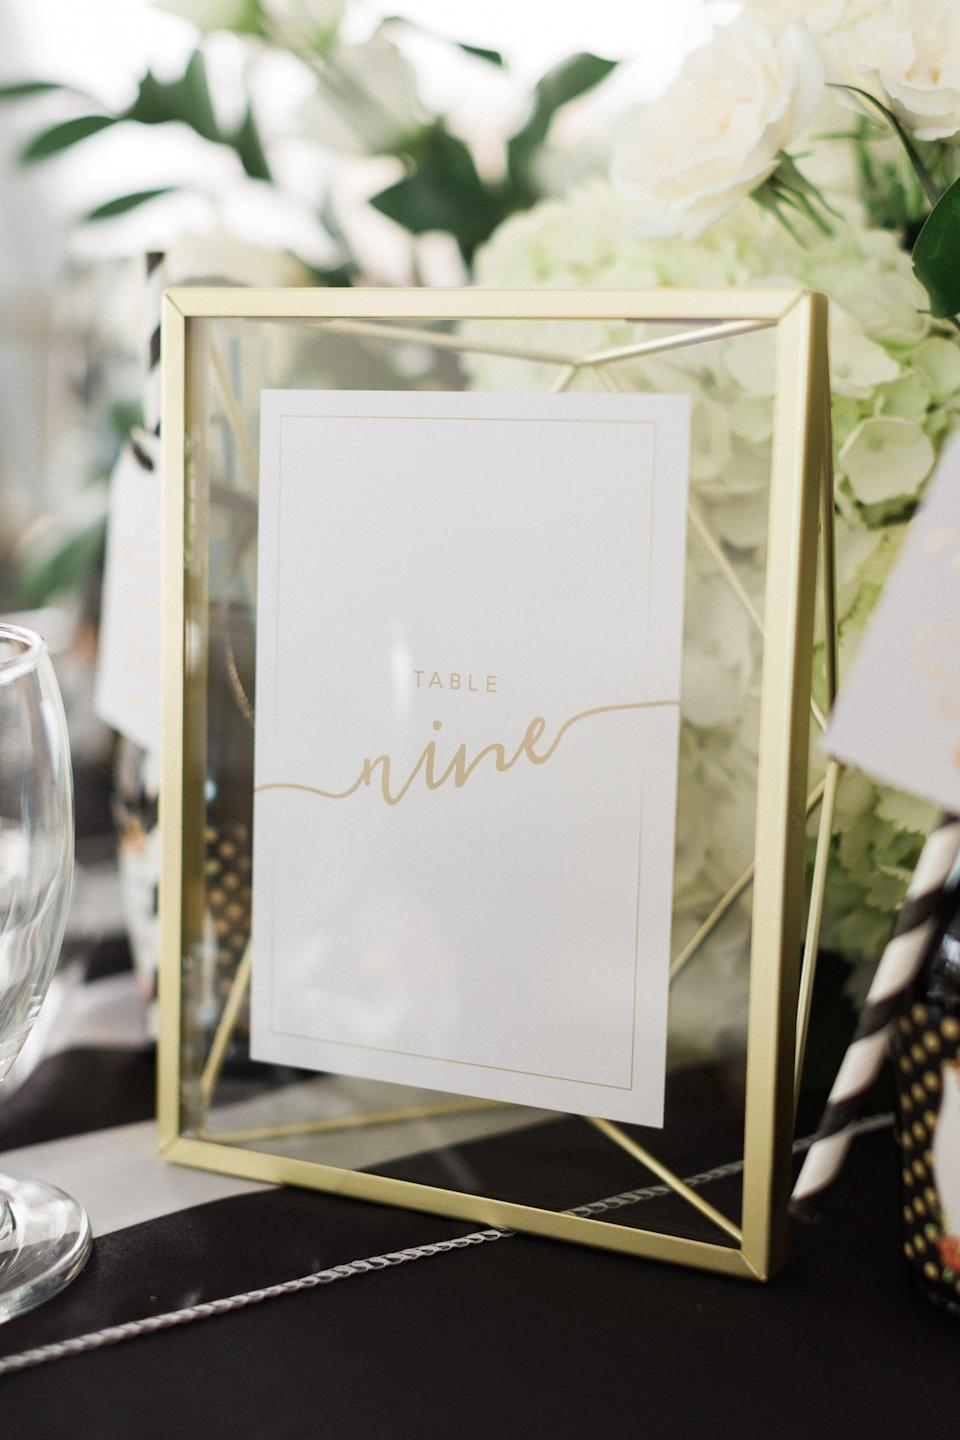 """<p>Get more creative with each table number when you put a handwritten place card in a chic frame. This will elevate each tablescape and give you the freedom to match the frame to your <a class=""""link rapid-noclick-resp"""" href=""""https://www.popsugar.co.uk/tag/Wedding"""" rel=""""nofollow noopener"""" target=""""_blank"""" data-ylk=""""slk:wedding"""">wedding</a> color scheme.</p>"""